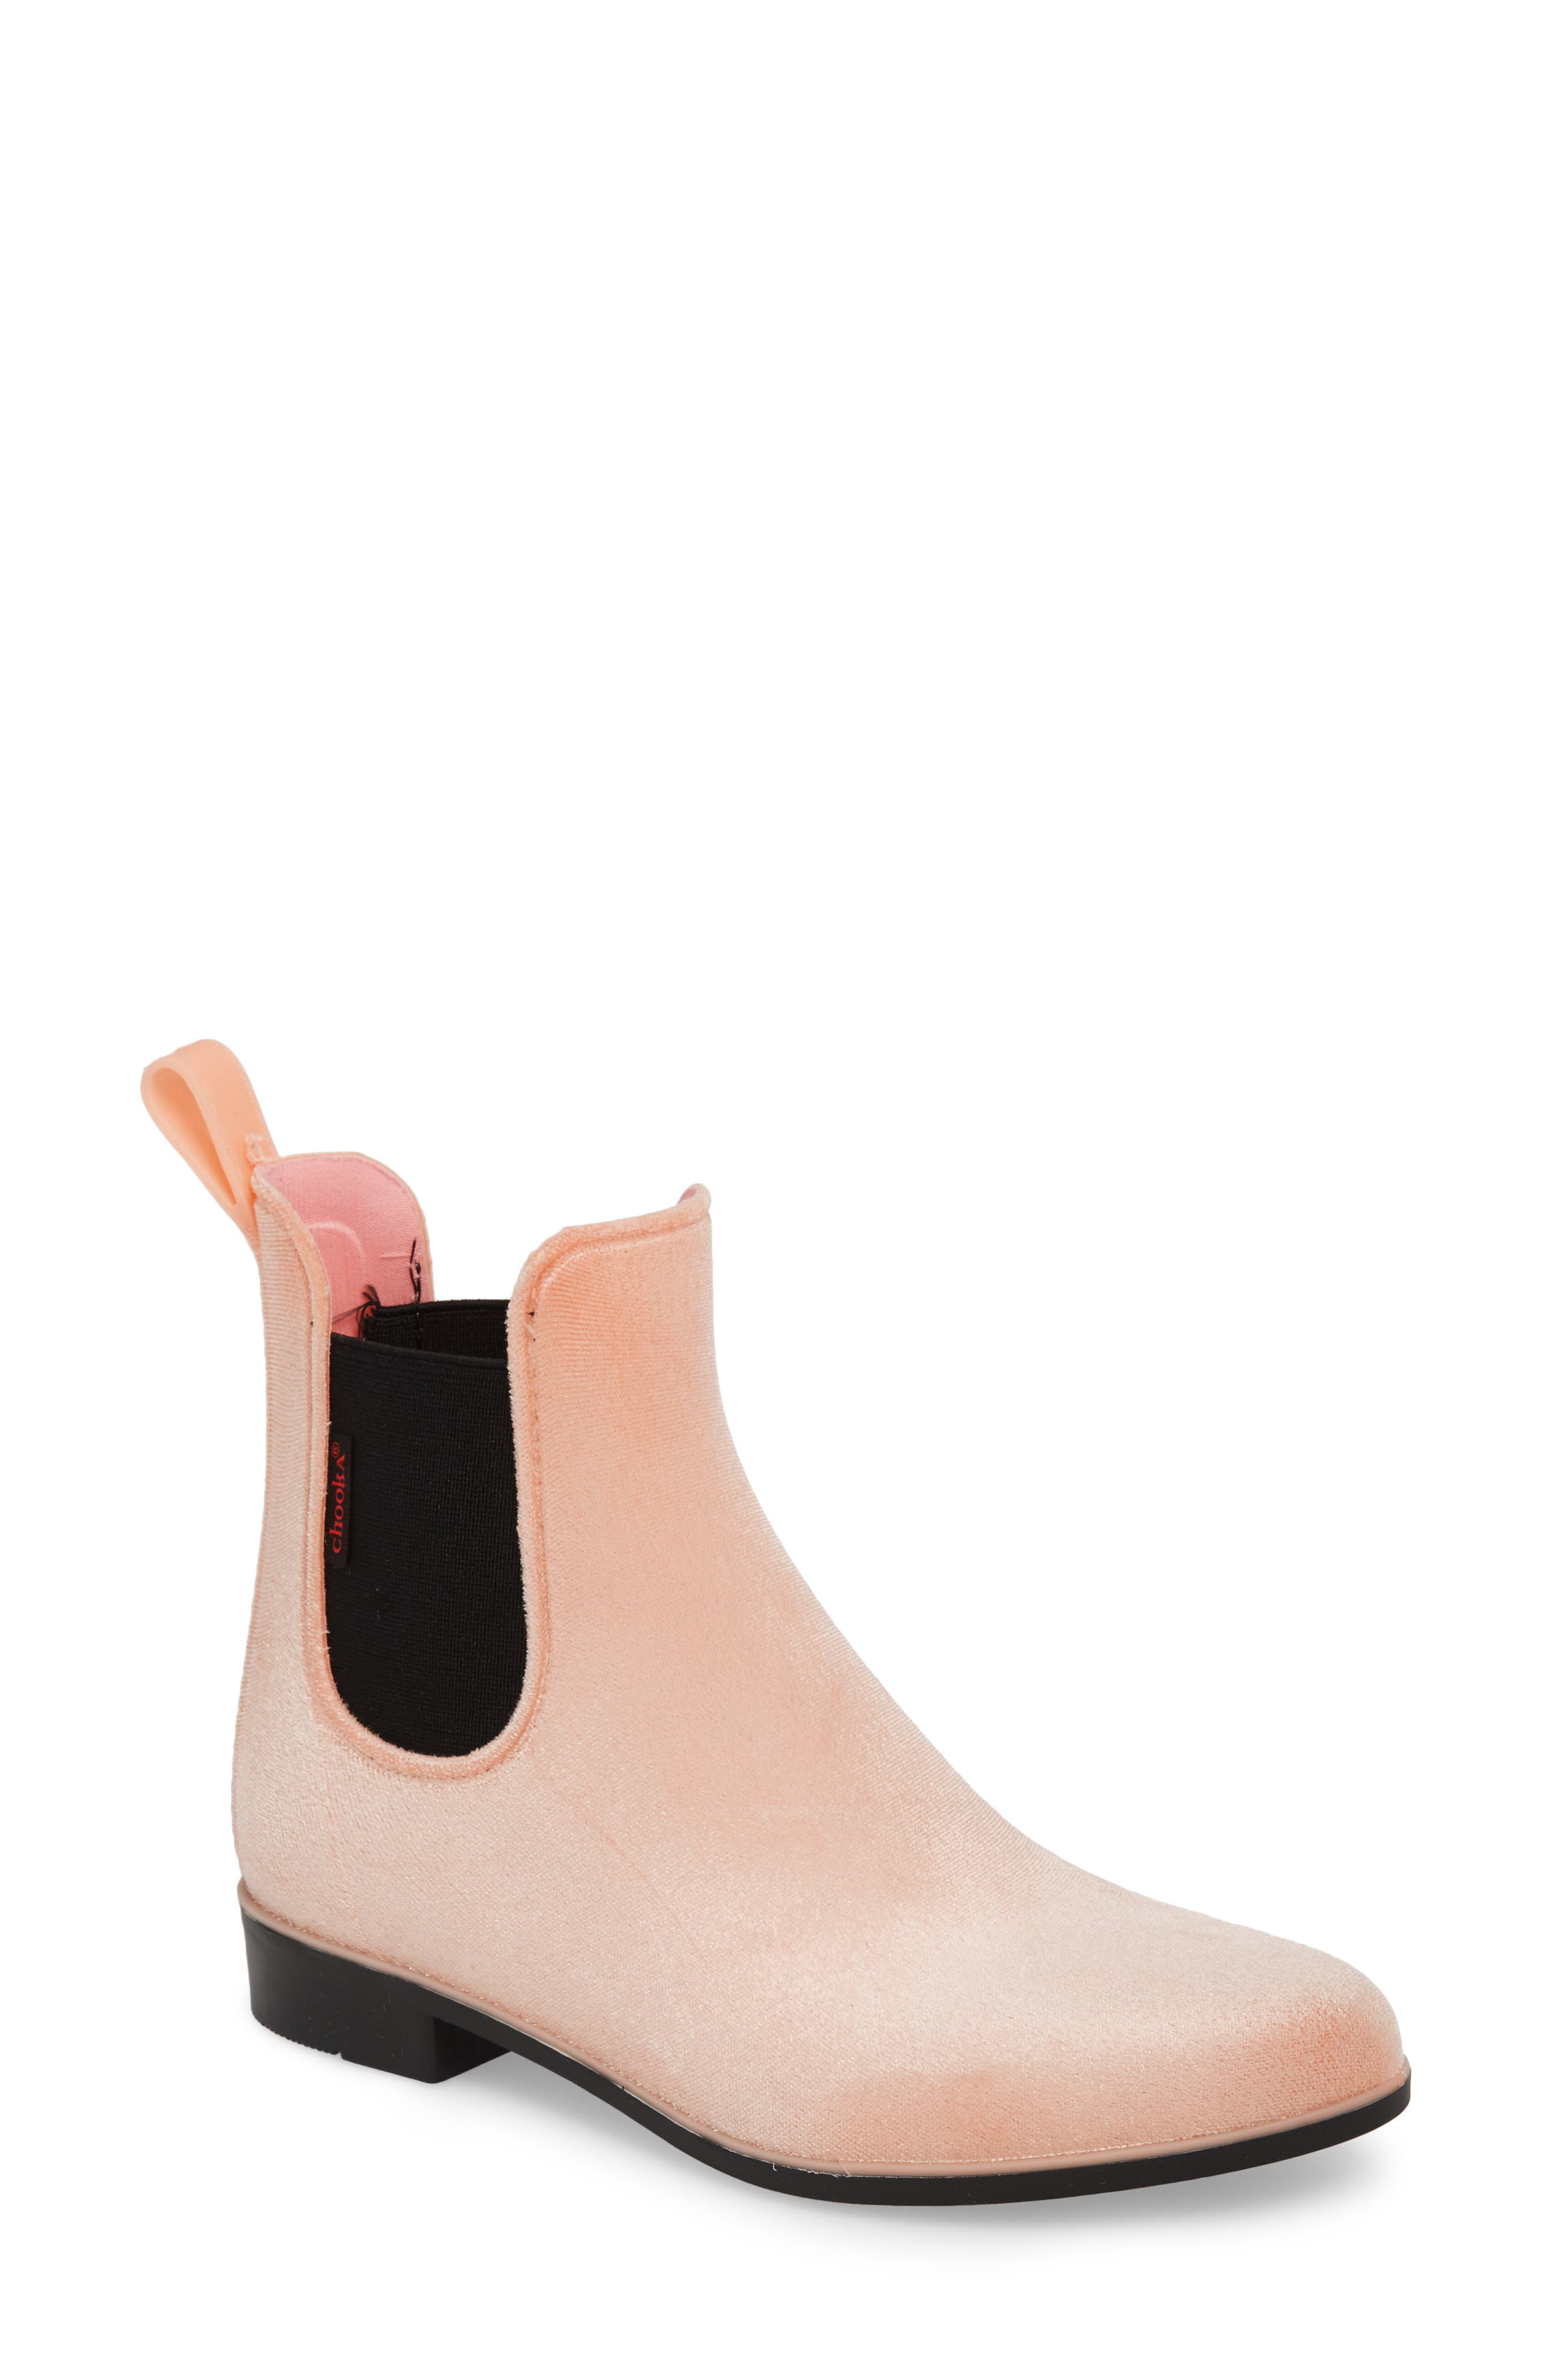 Bainbridge Chelsea Rain Boot,                         Main,                         color, Blush